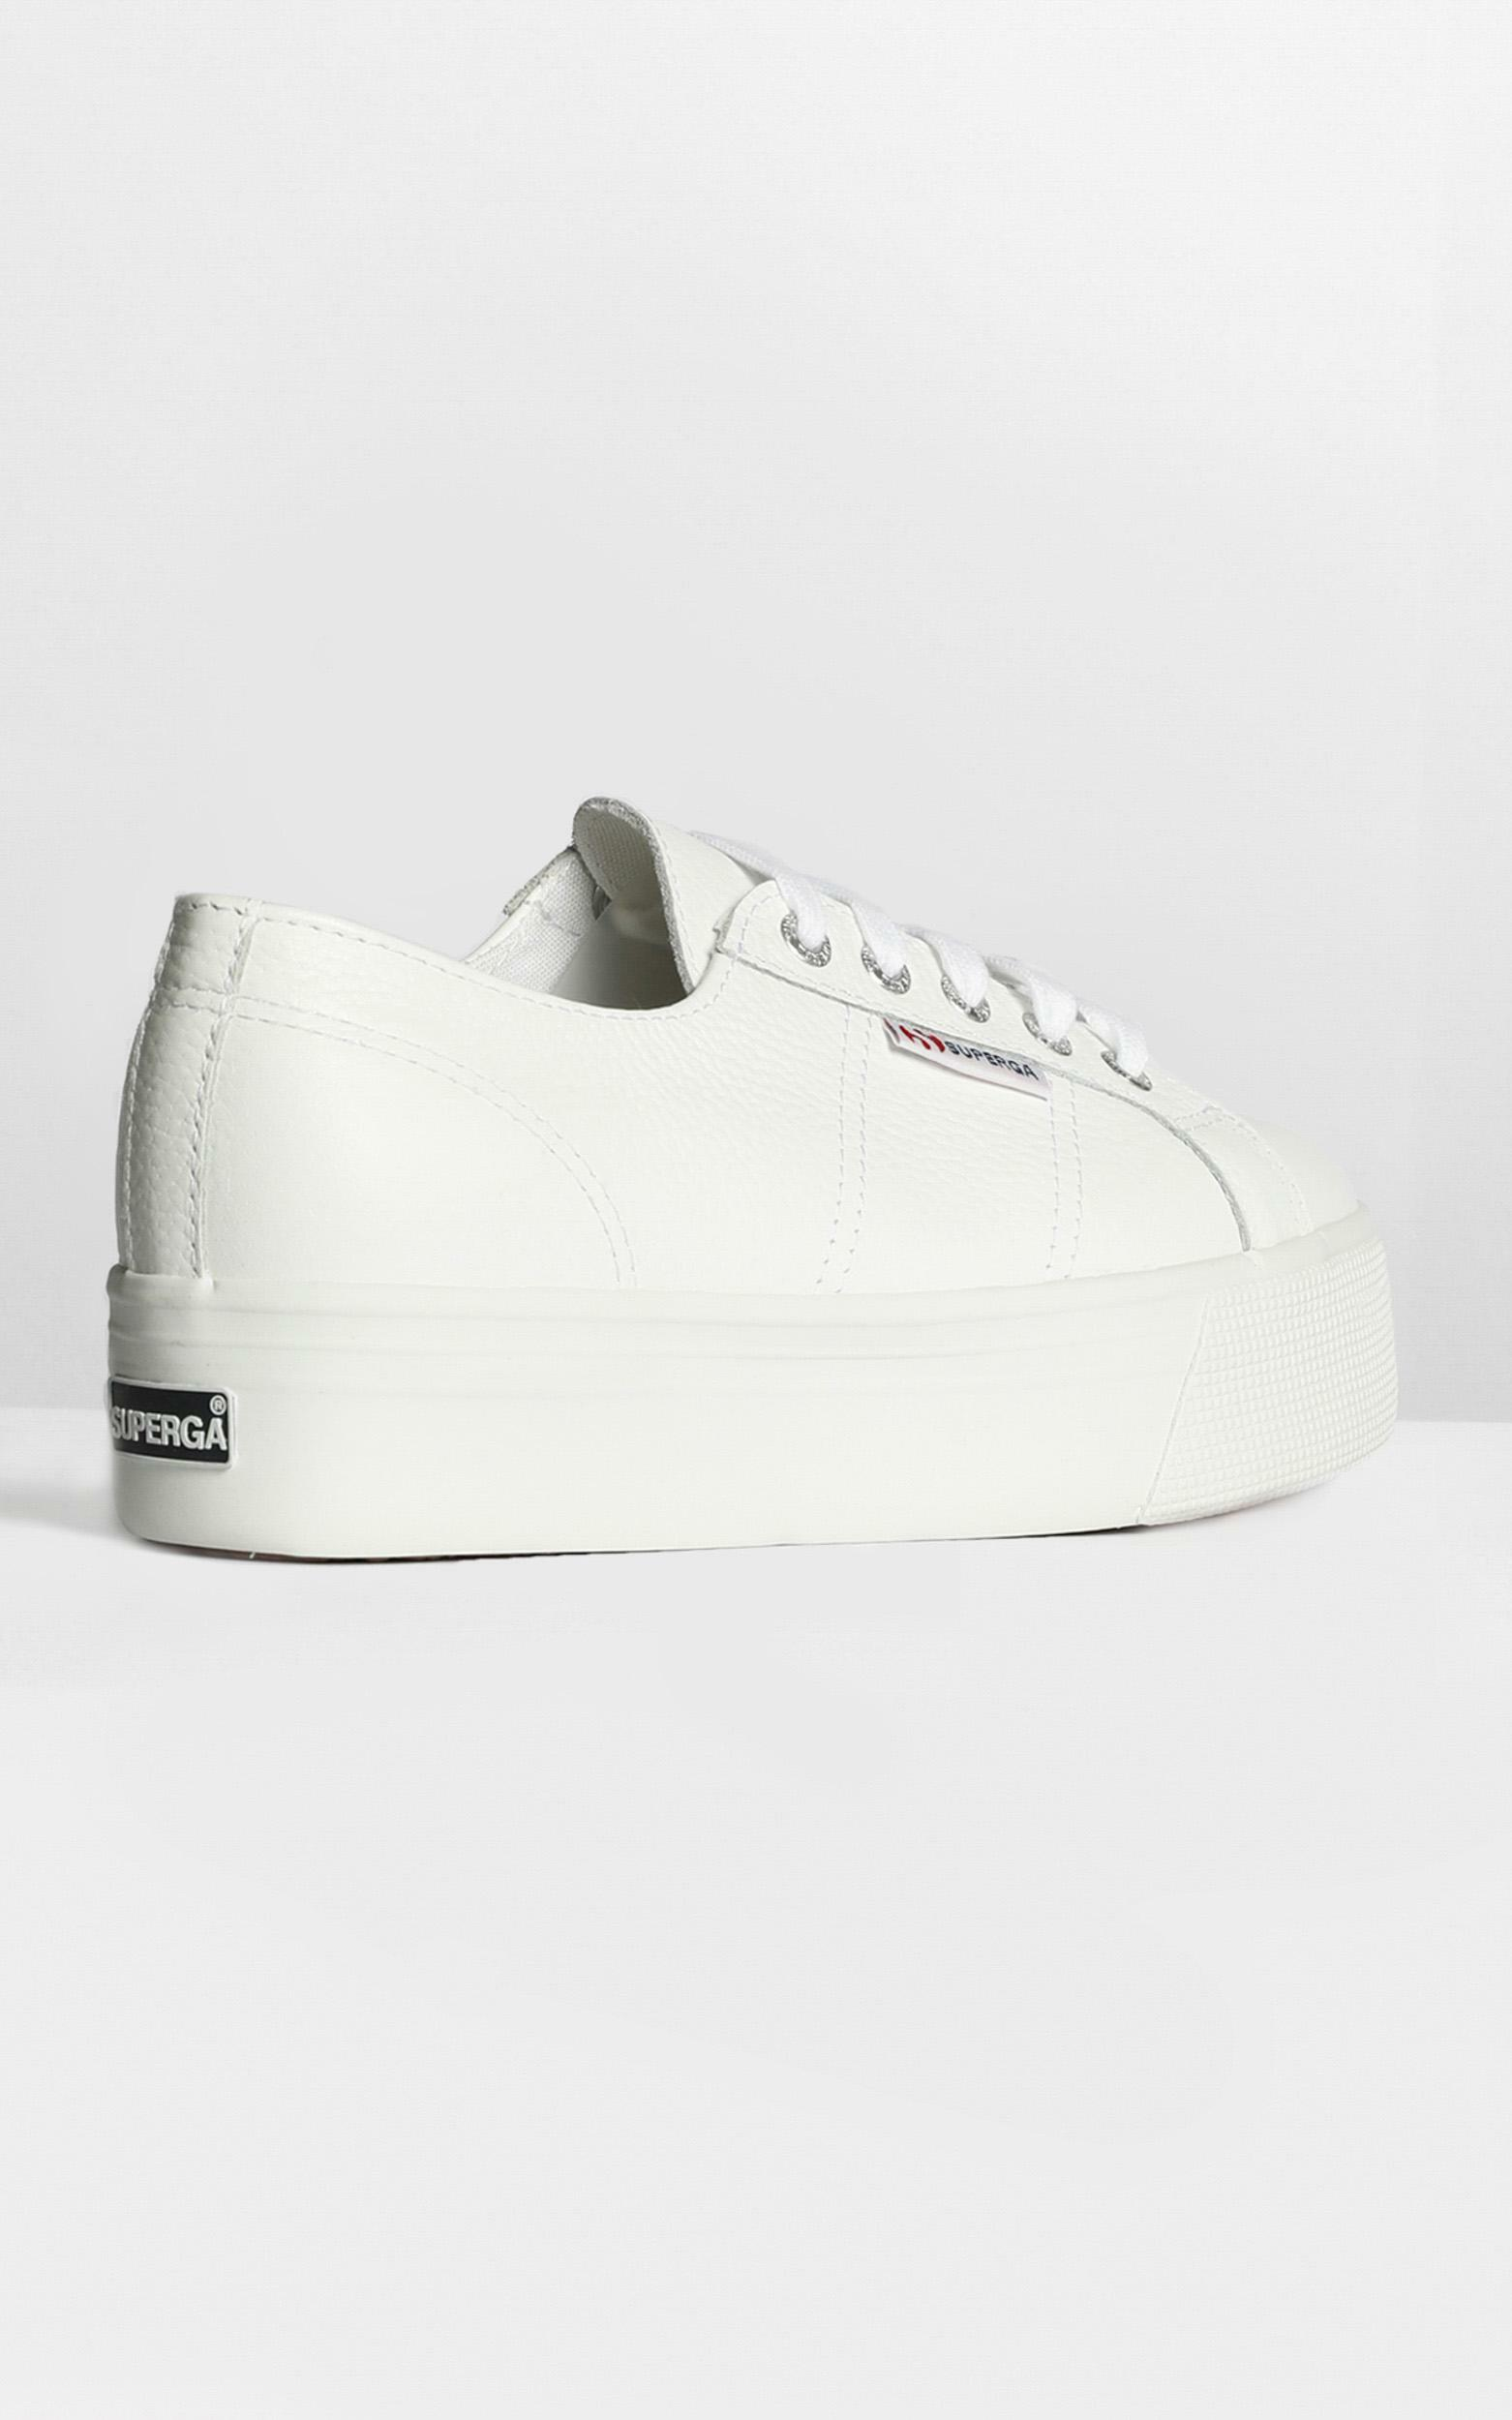 Superga - 2790 FGLW Platform Sneakers in white leather - 9, WHT6, hi-res image number null